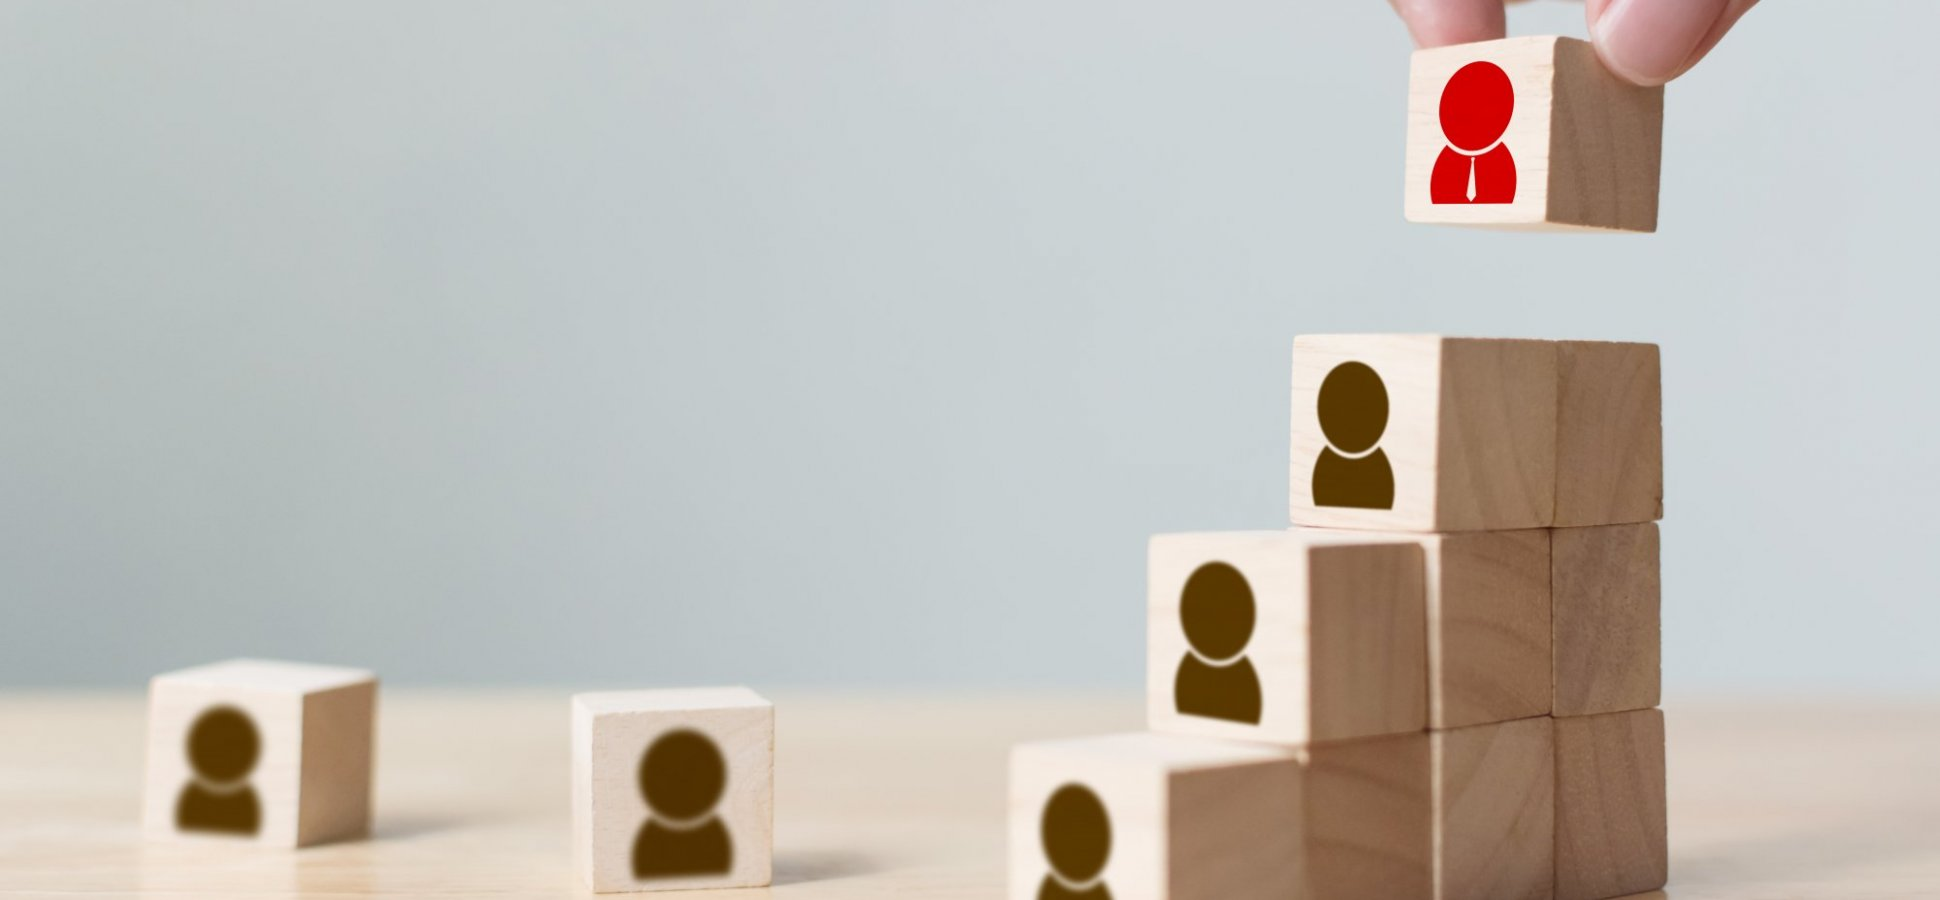 Should You Promote Your Best Employee? Here are 4 Questions to Help You Decide